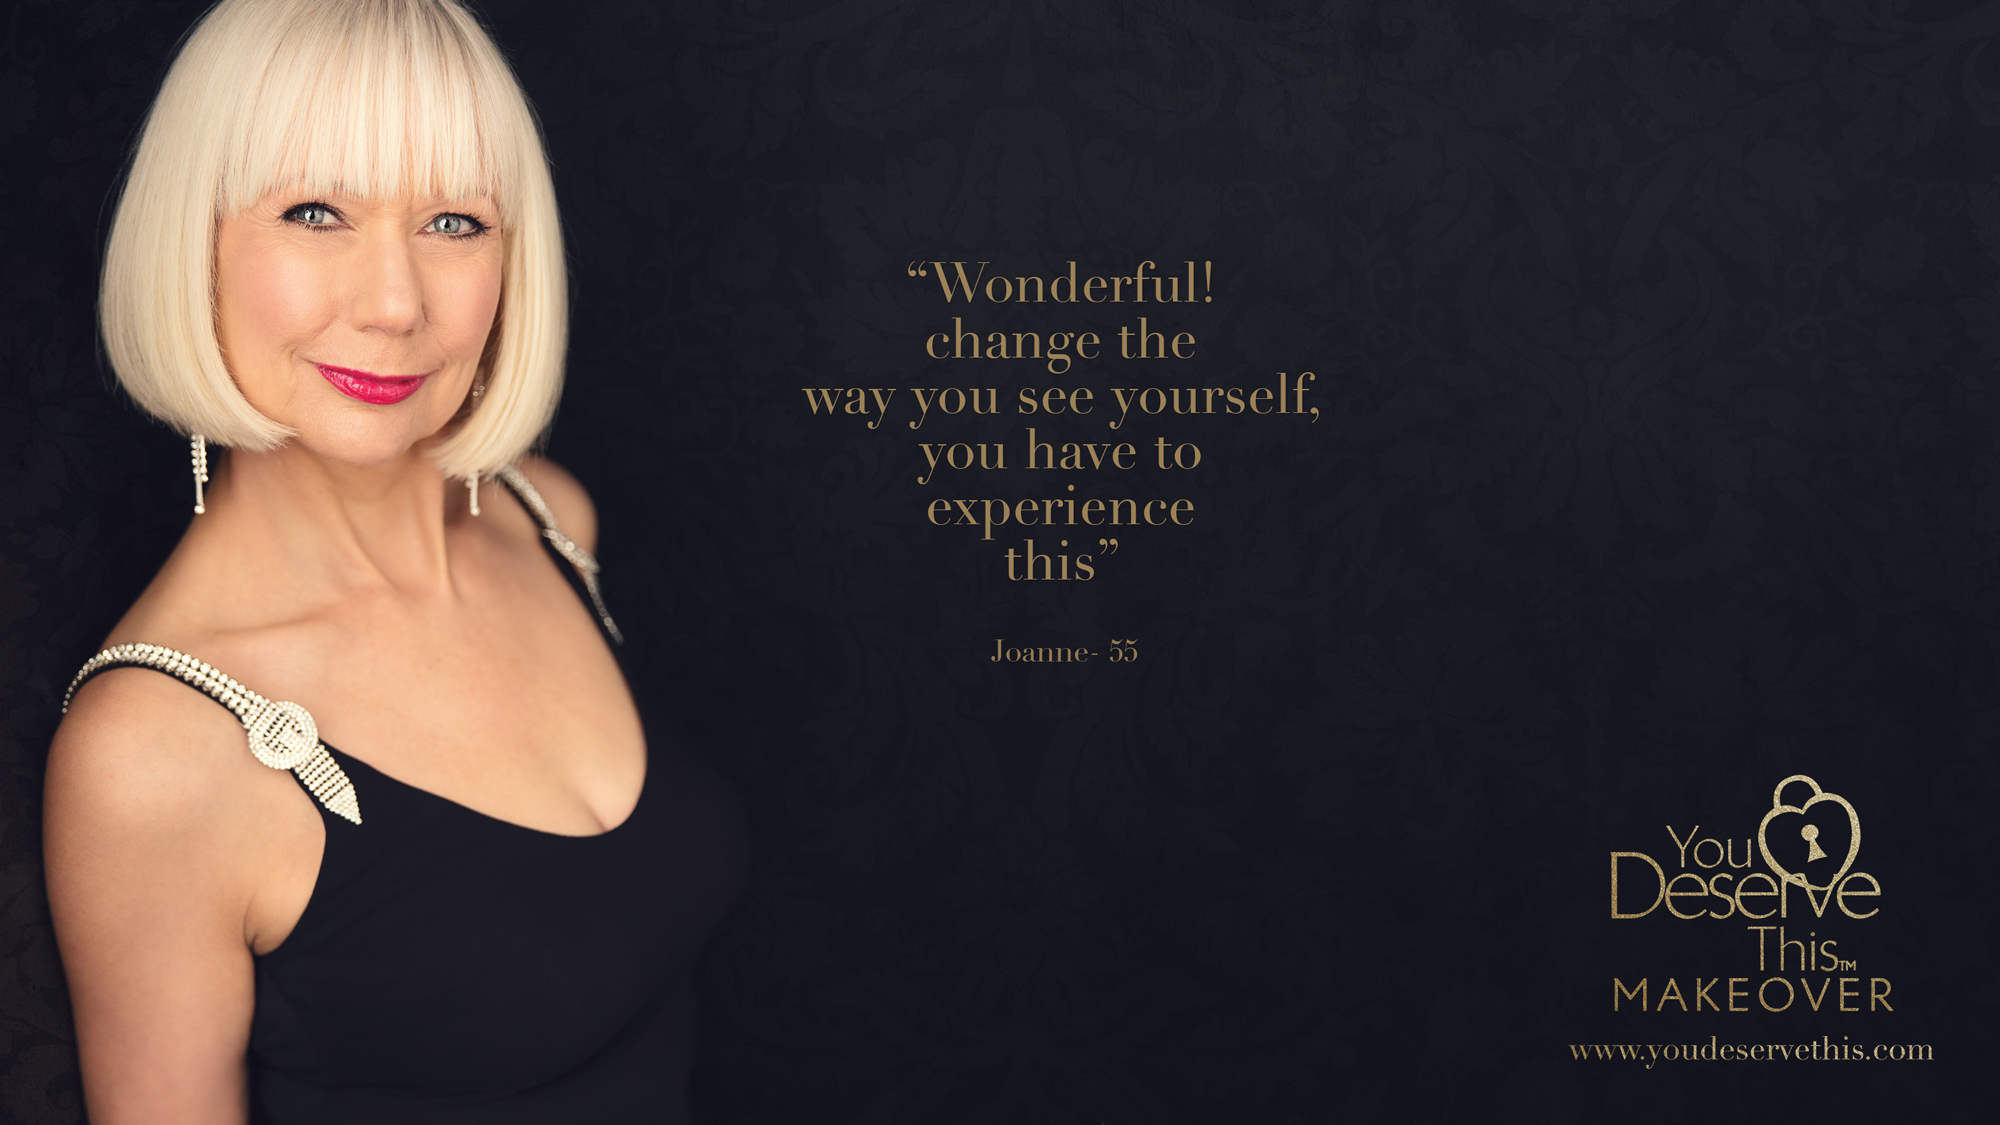 Wonderful! Change the way you see yourself, you have to experience this. Makeover and Photoshoot  www.youdeservethis.com